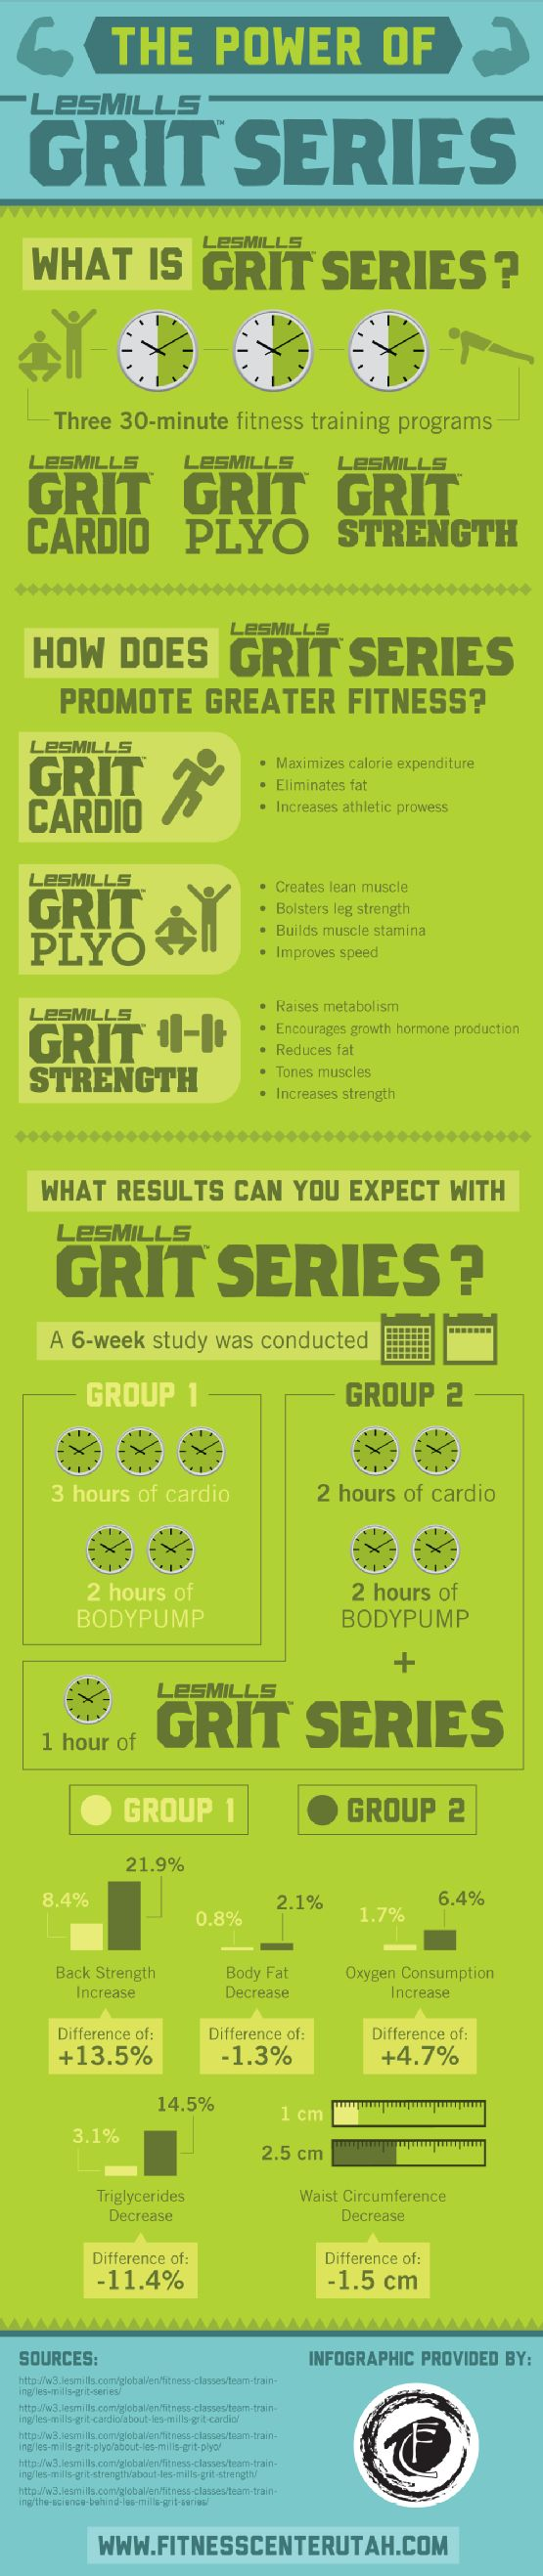 What makes the Les Mills GRIT Series different from other fitness programs? This series combines cardio, plyo, and strength exercises for the ultimate